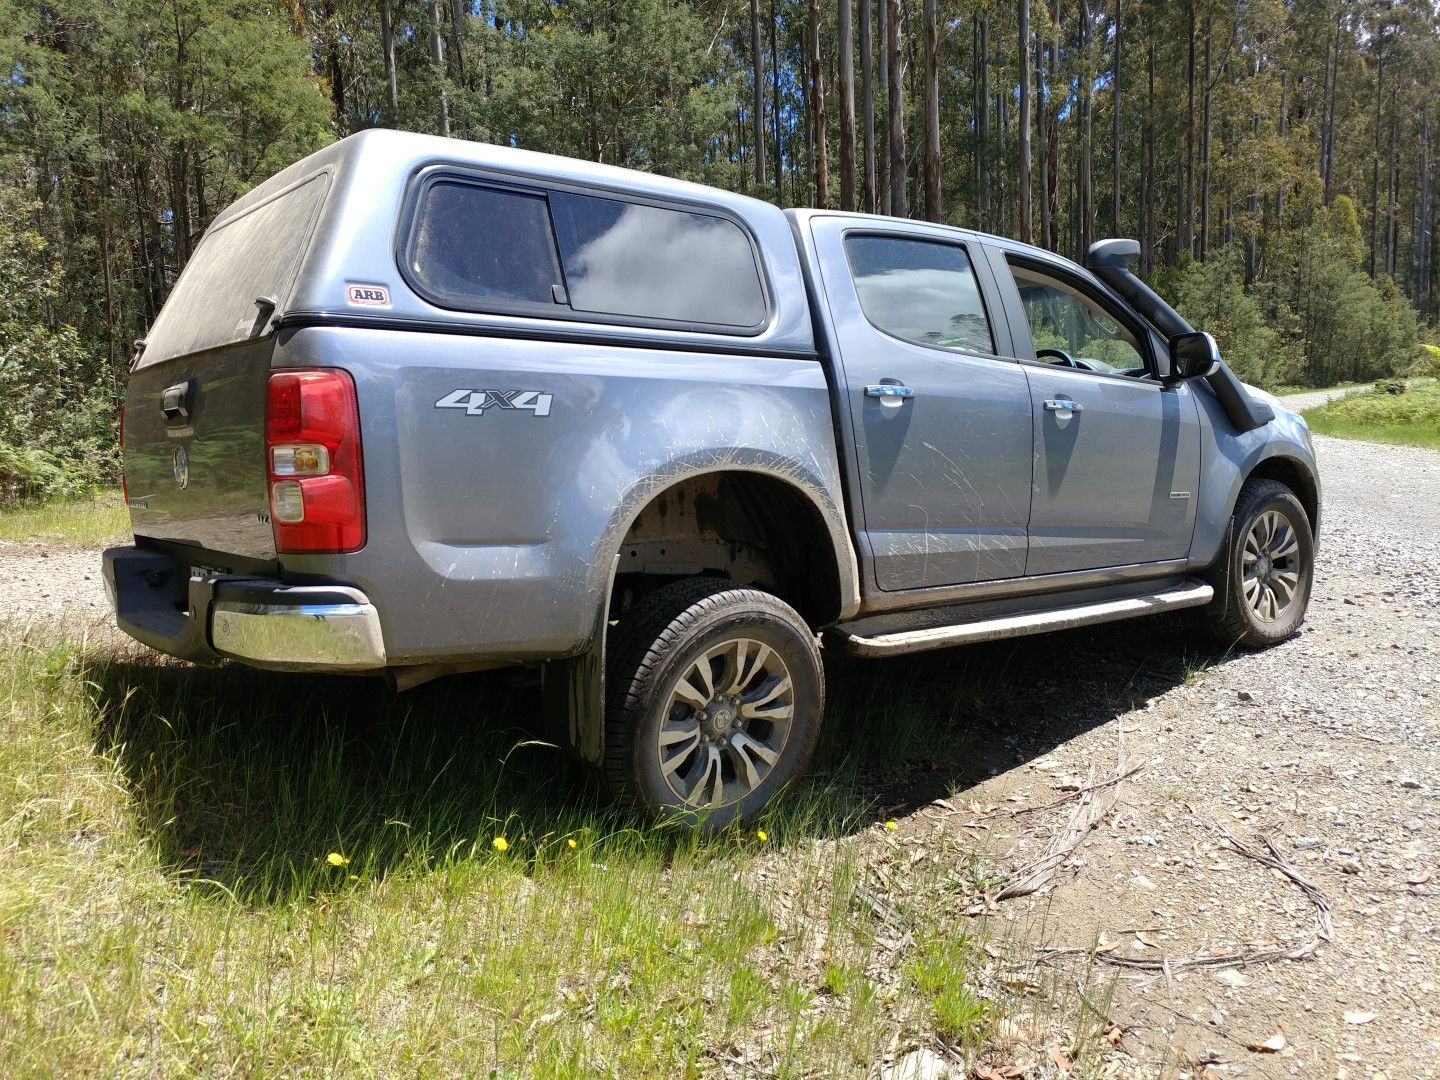 MY17 Holden Colorado ARB Canopy - @4x4_photos & MY17 Holden Colorado ARB Canopy - @4x4_photos | Chevrolet S10 ...